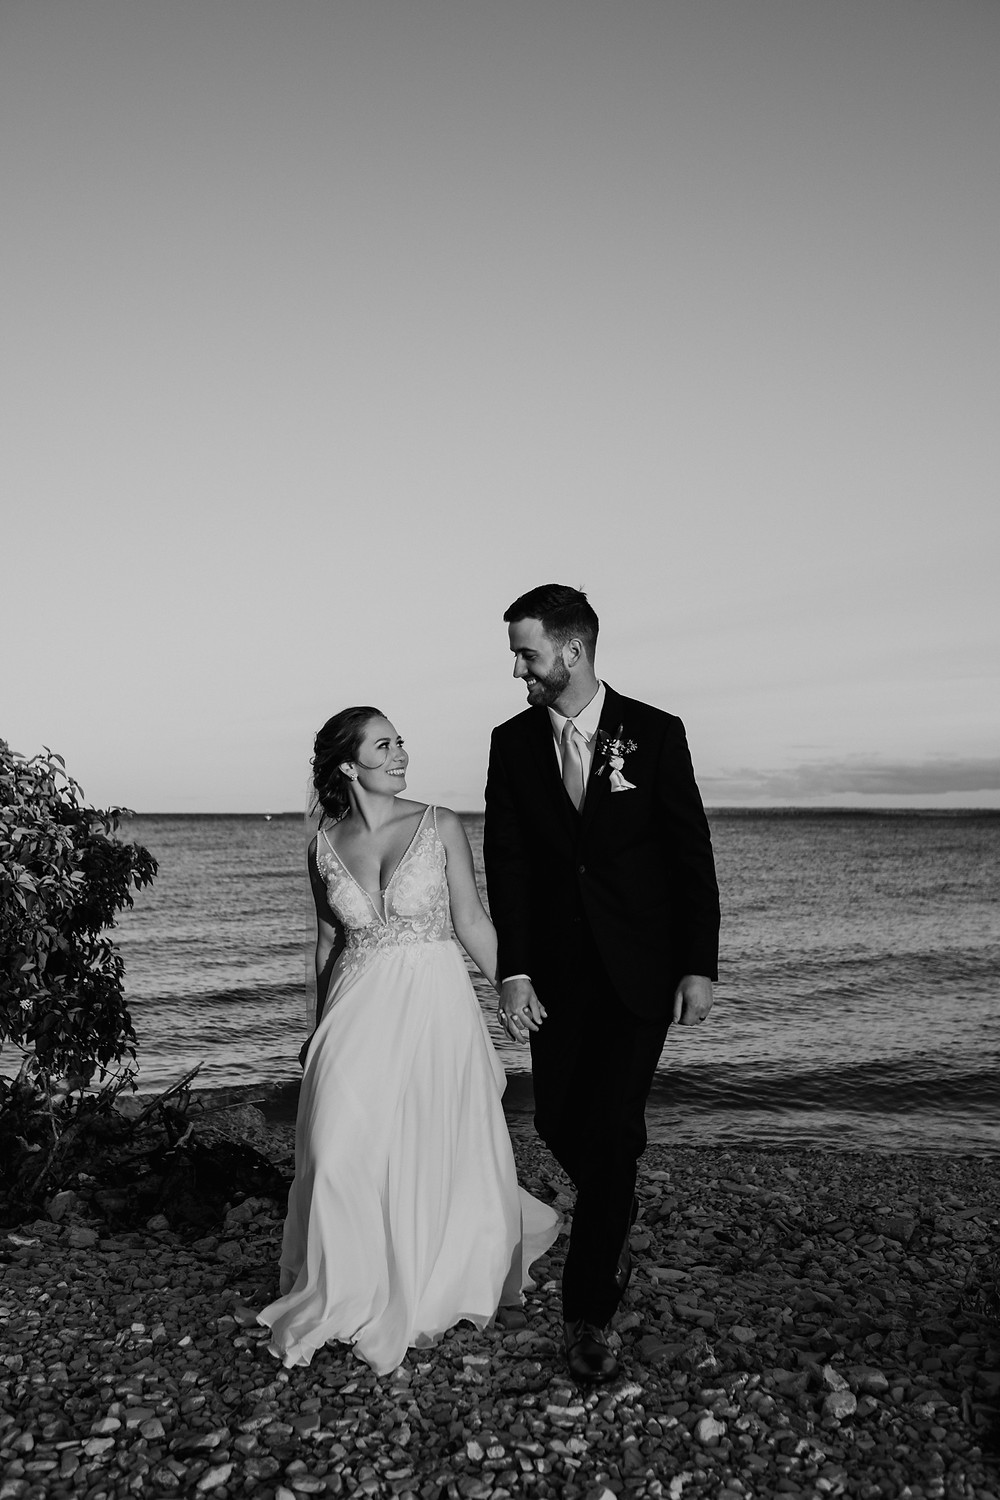 Bride and groom by lake on wedding day. Photographed by Nicole Leanne Photography.